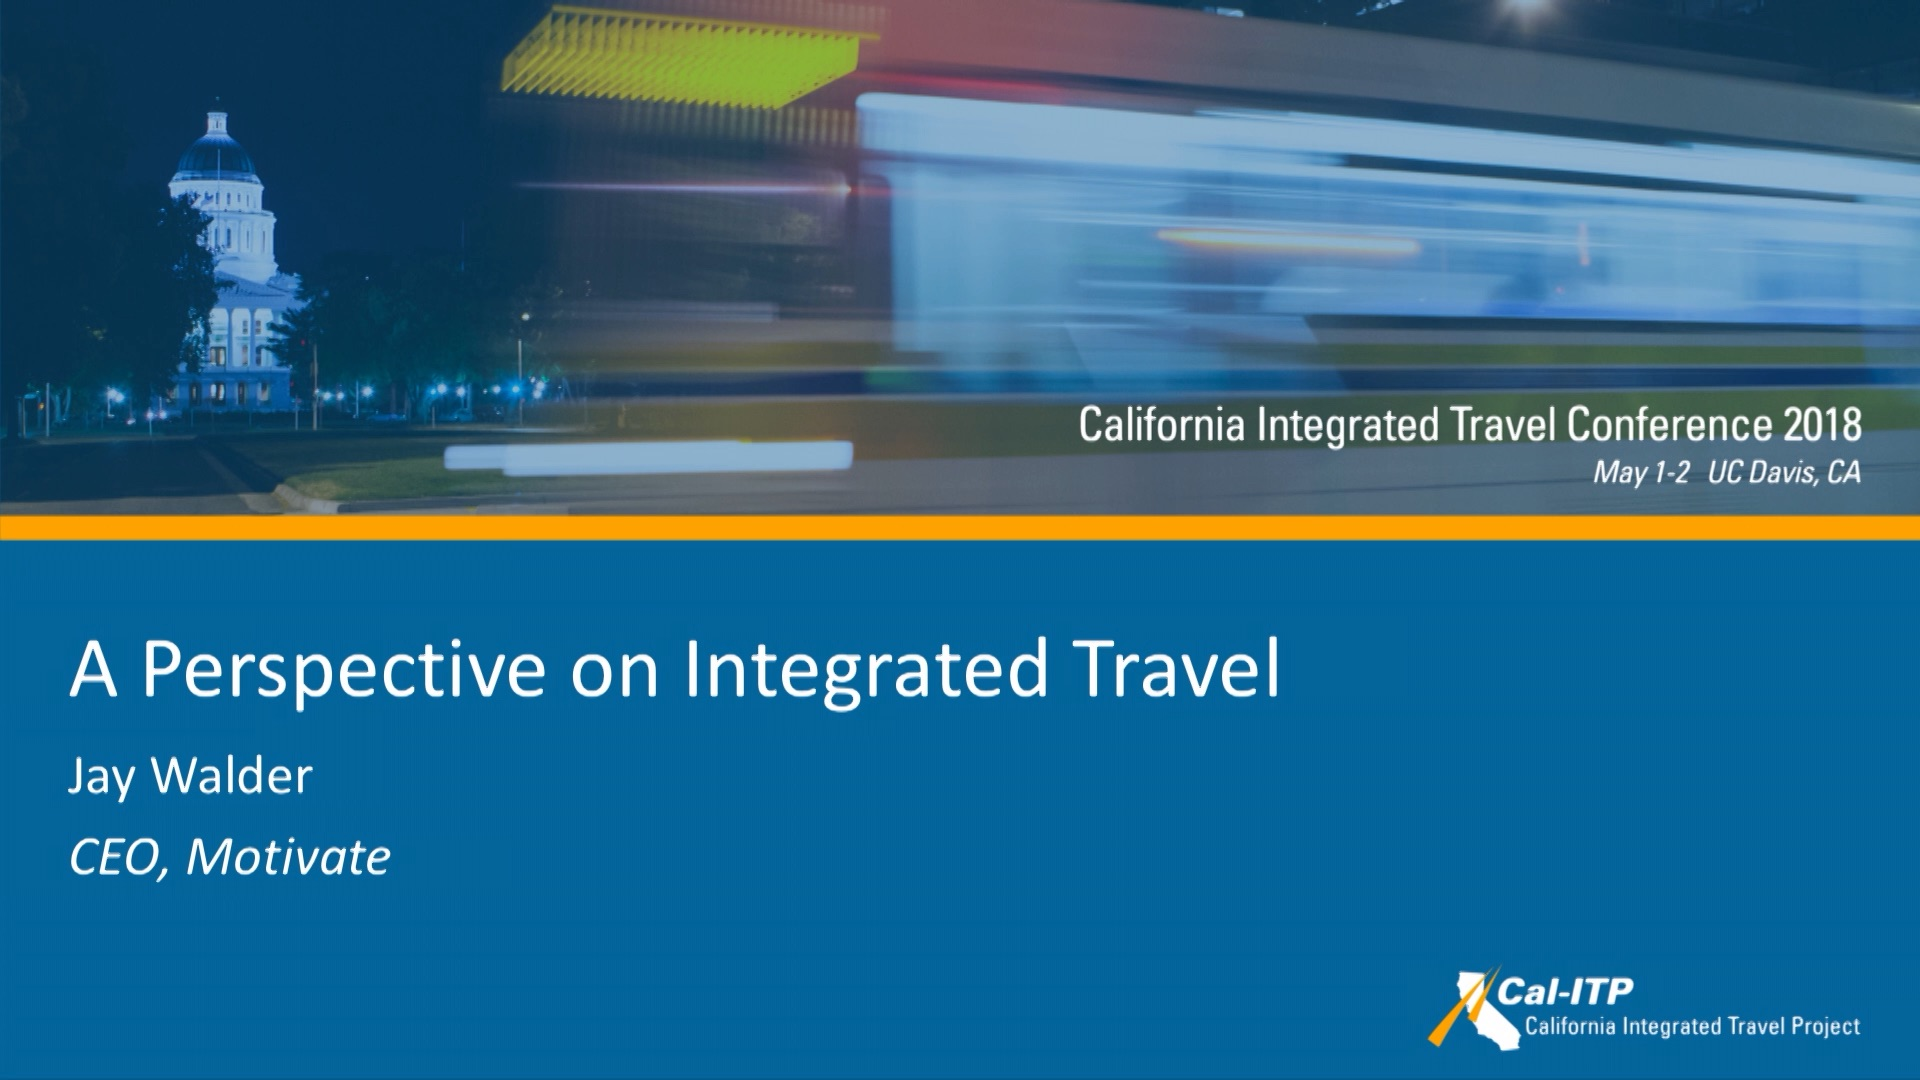 7. A Perspective on Integrated Travel